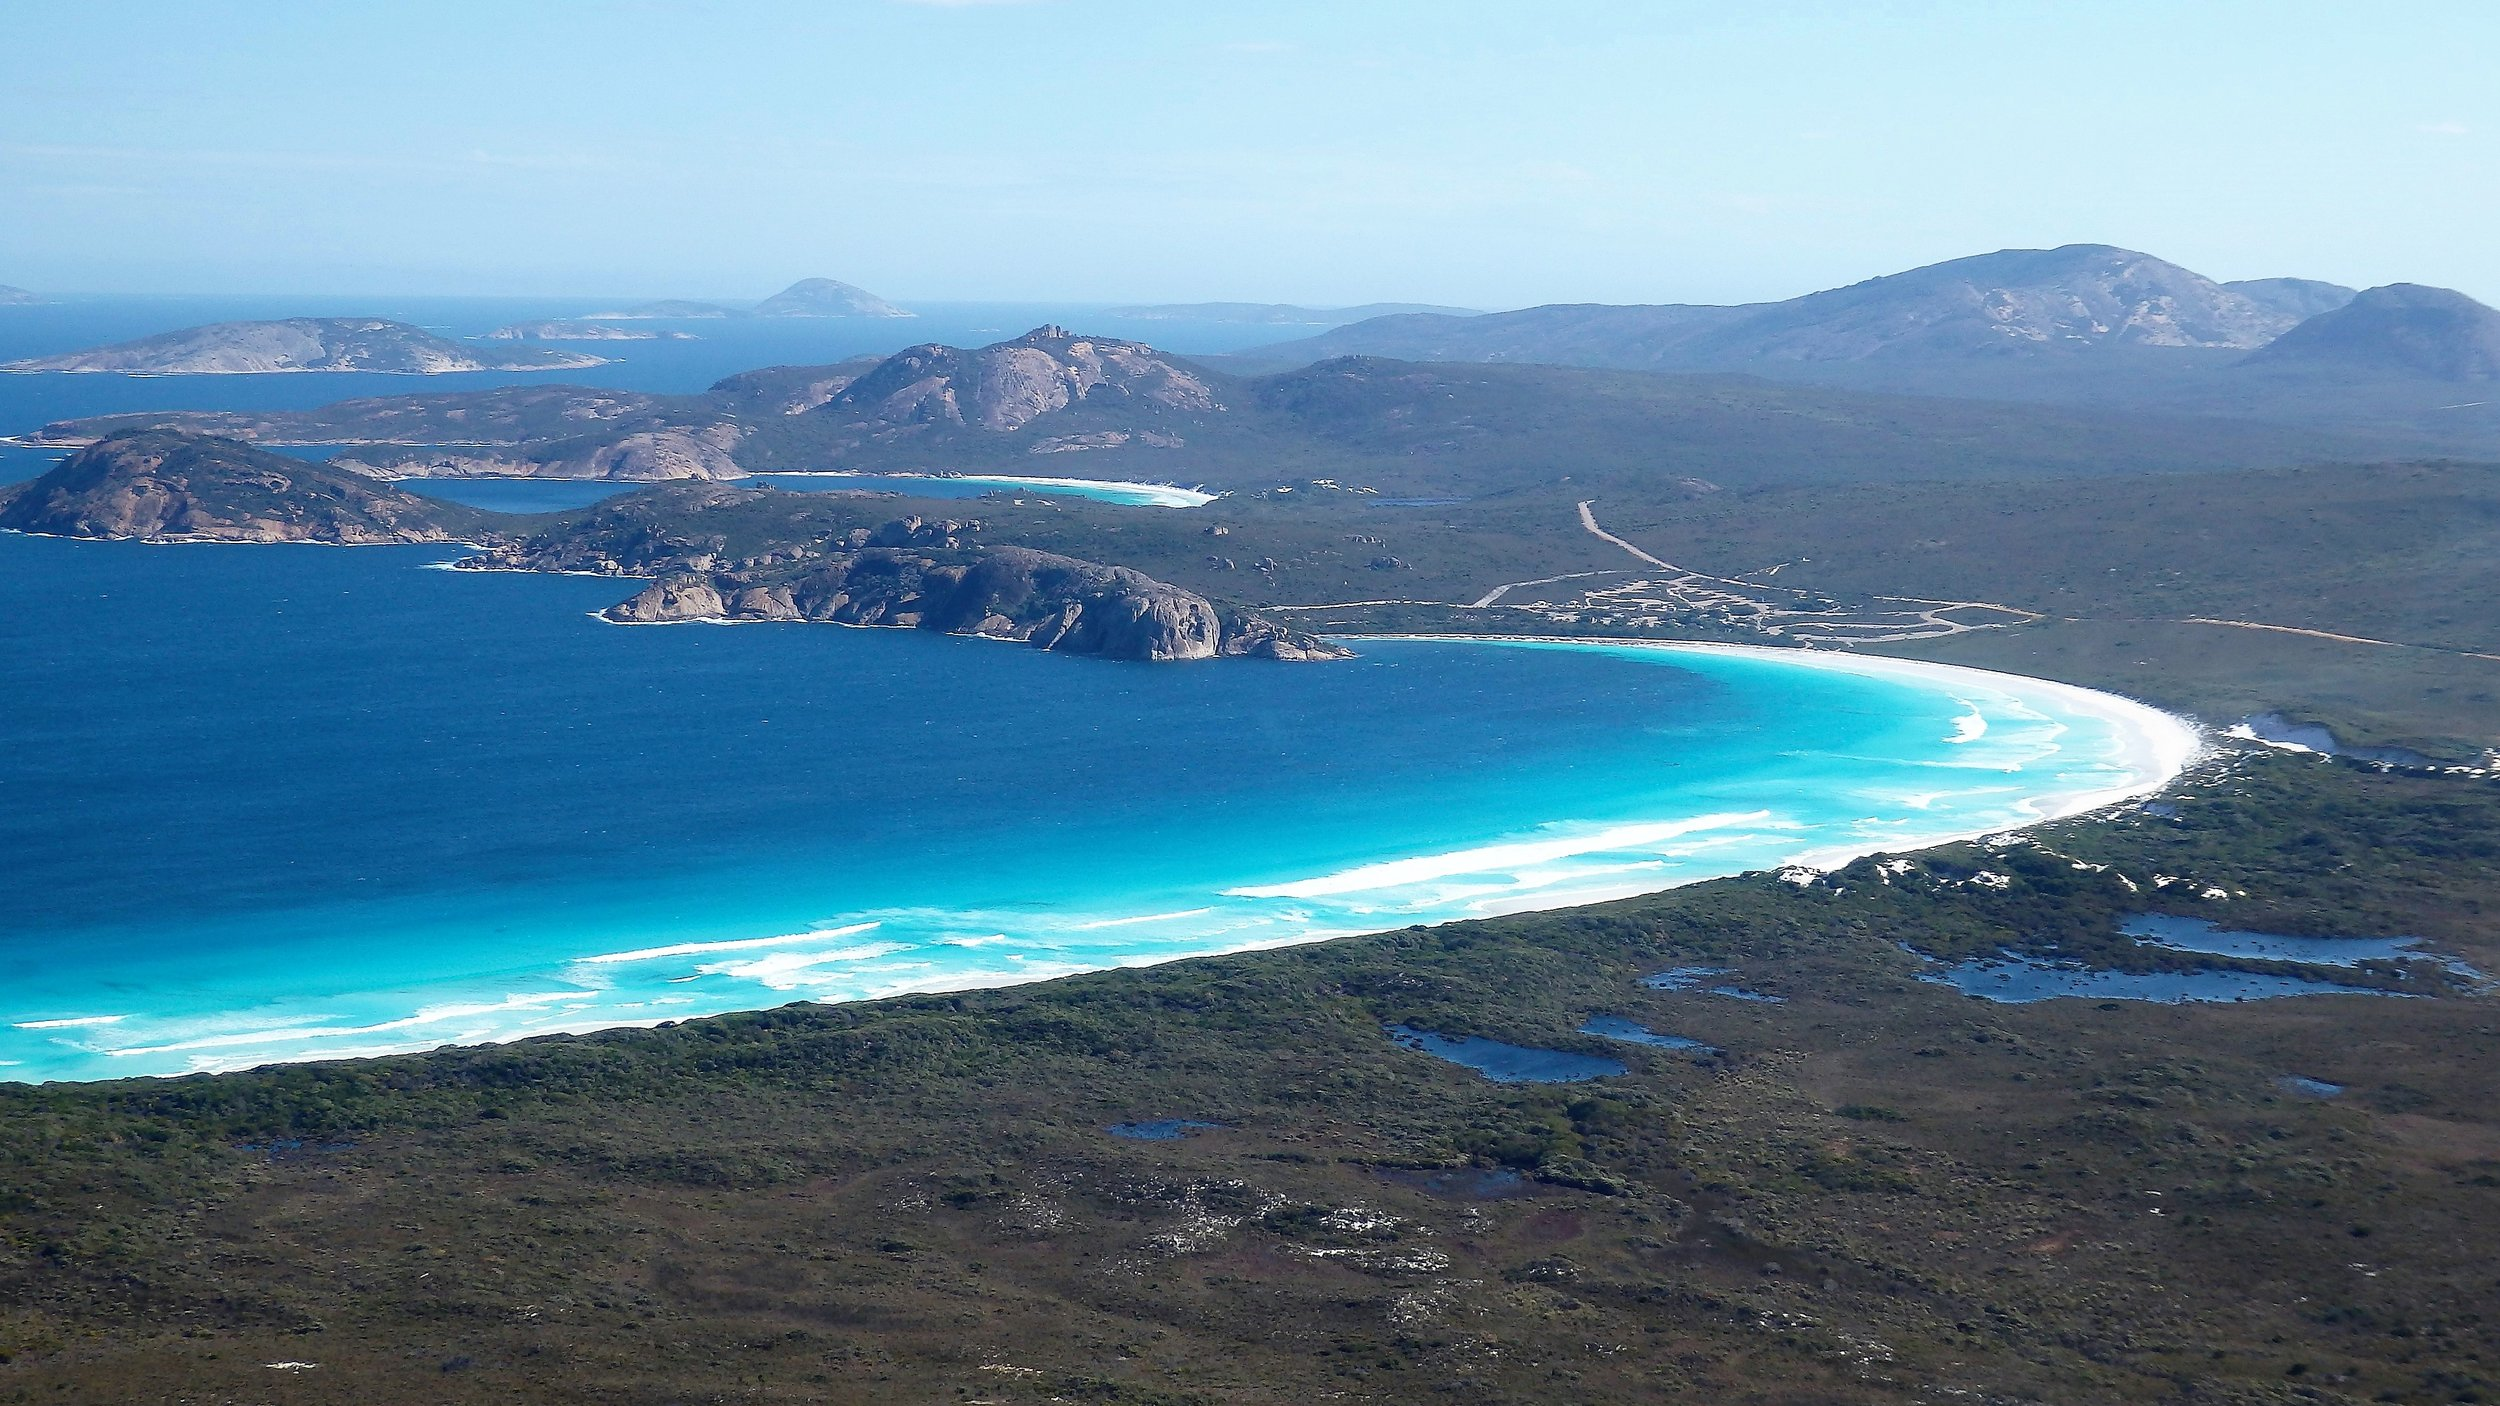 Cape Le-Grand National Park with Lucky Bay in the foreground